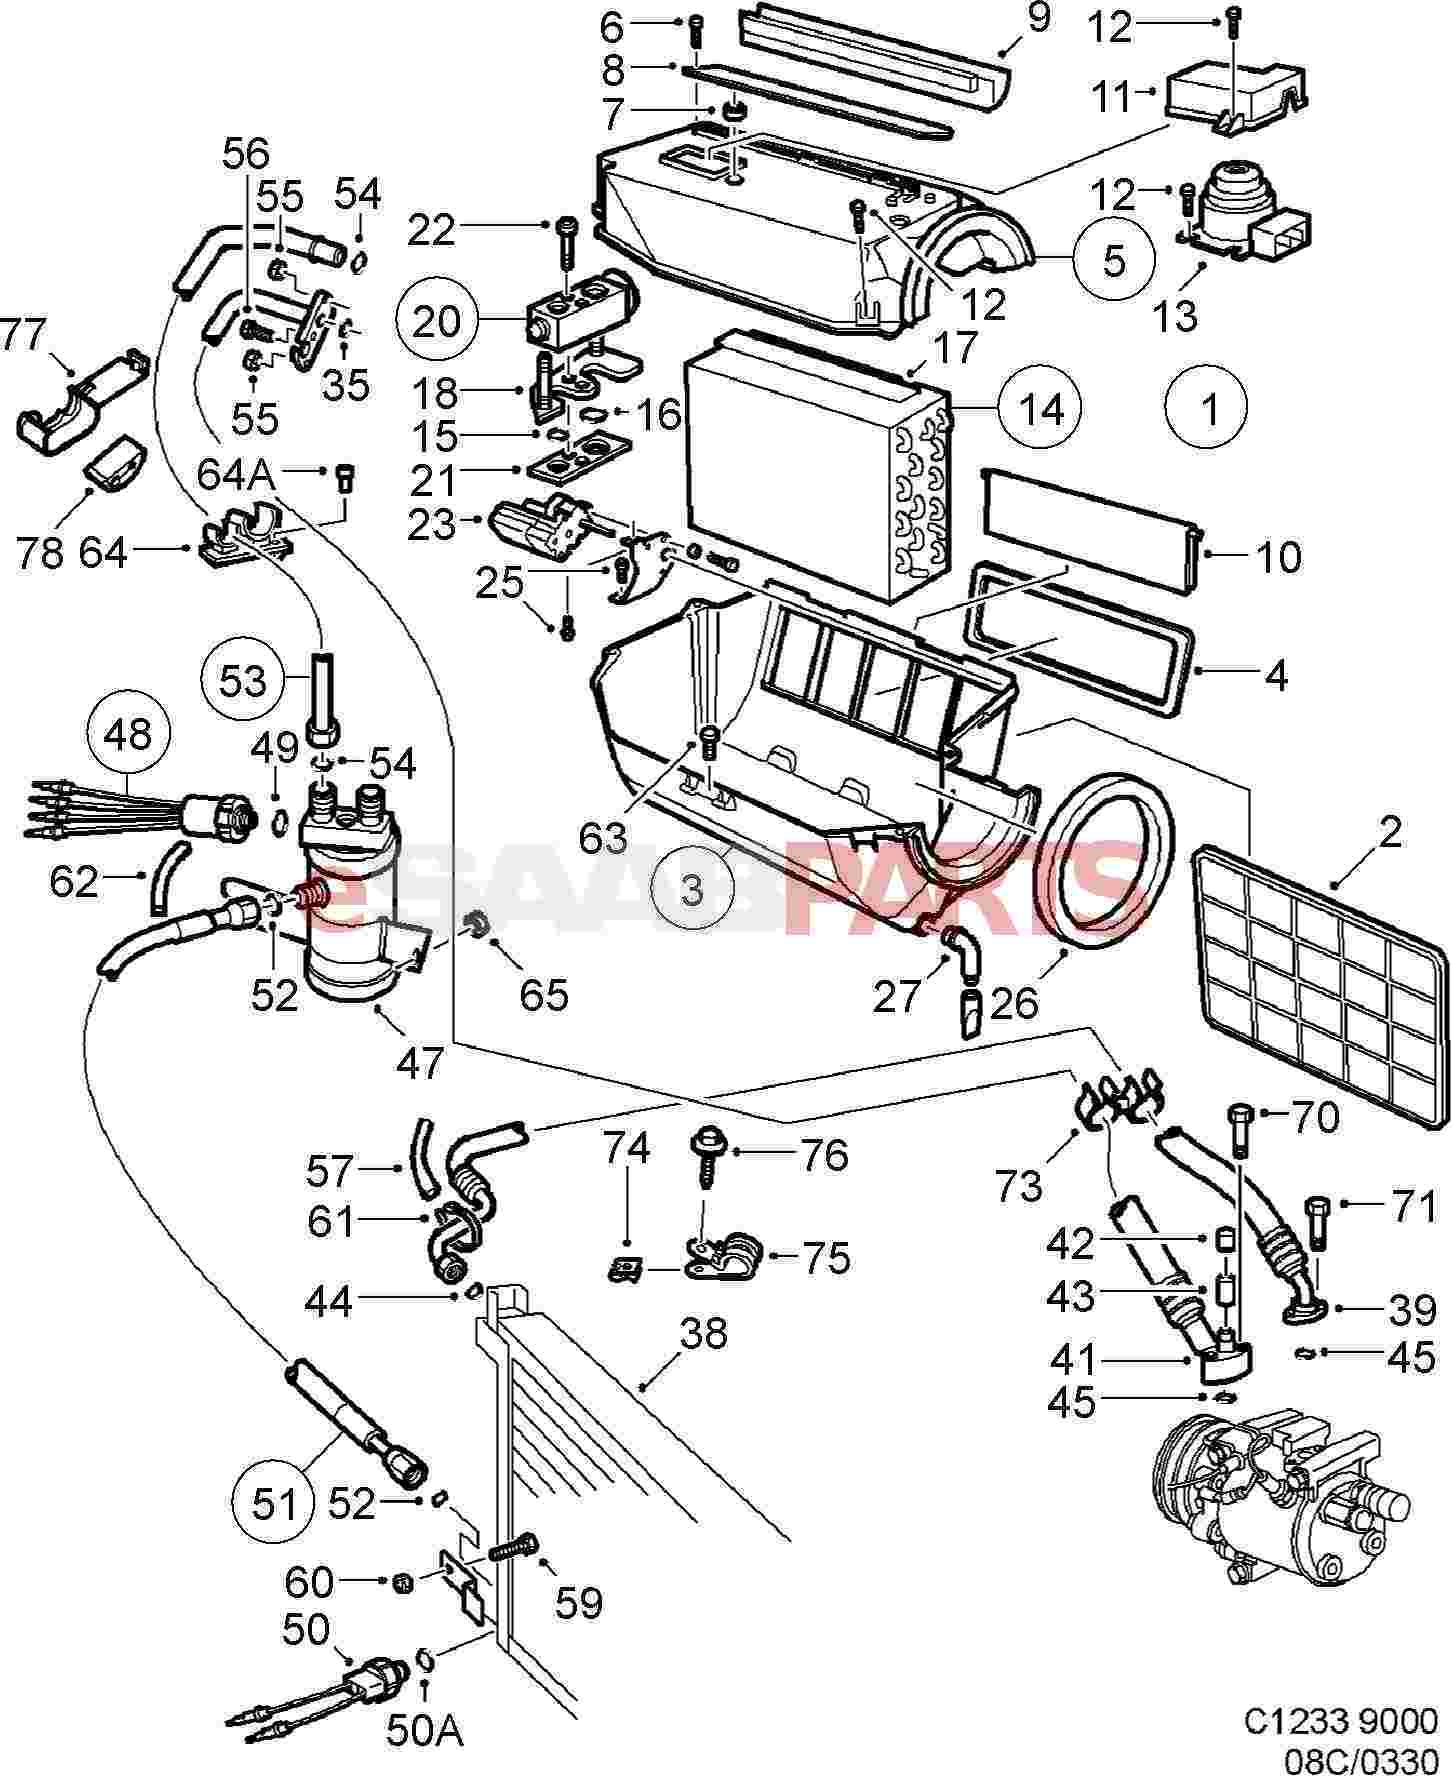 [WRG-9159] Saab 9000 Air Conditioning Wiring Diagram